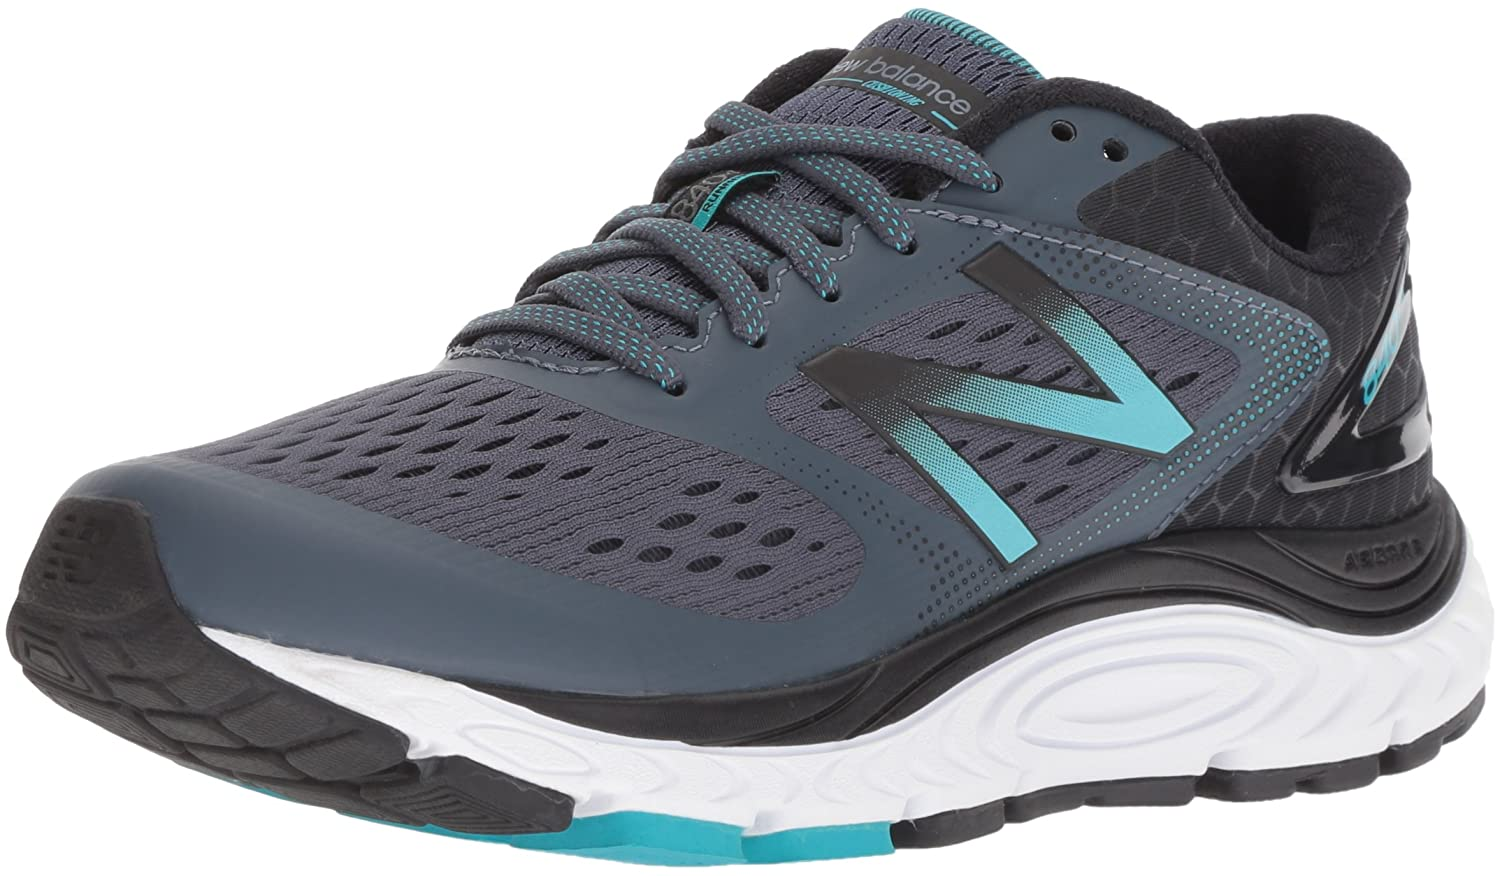 New Balance Women's 840v4 Running Shoe B01MQLSMOM 11.5 D US|Dark Grey